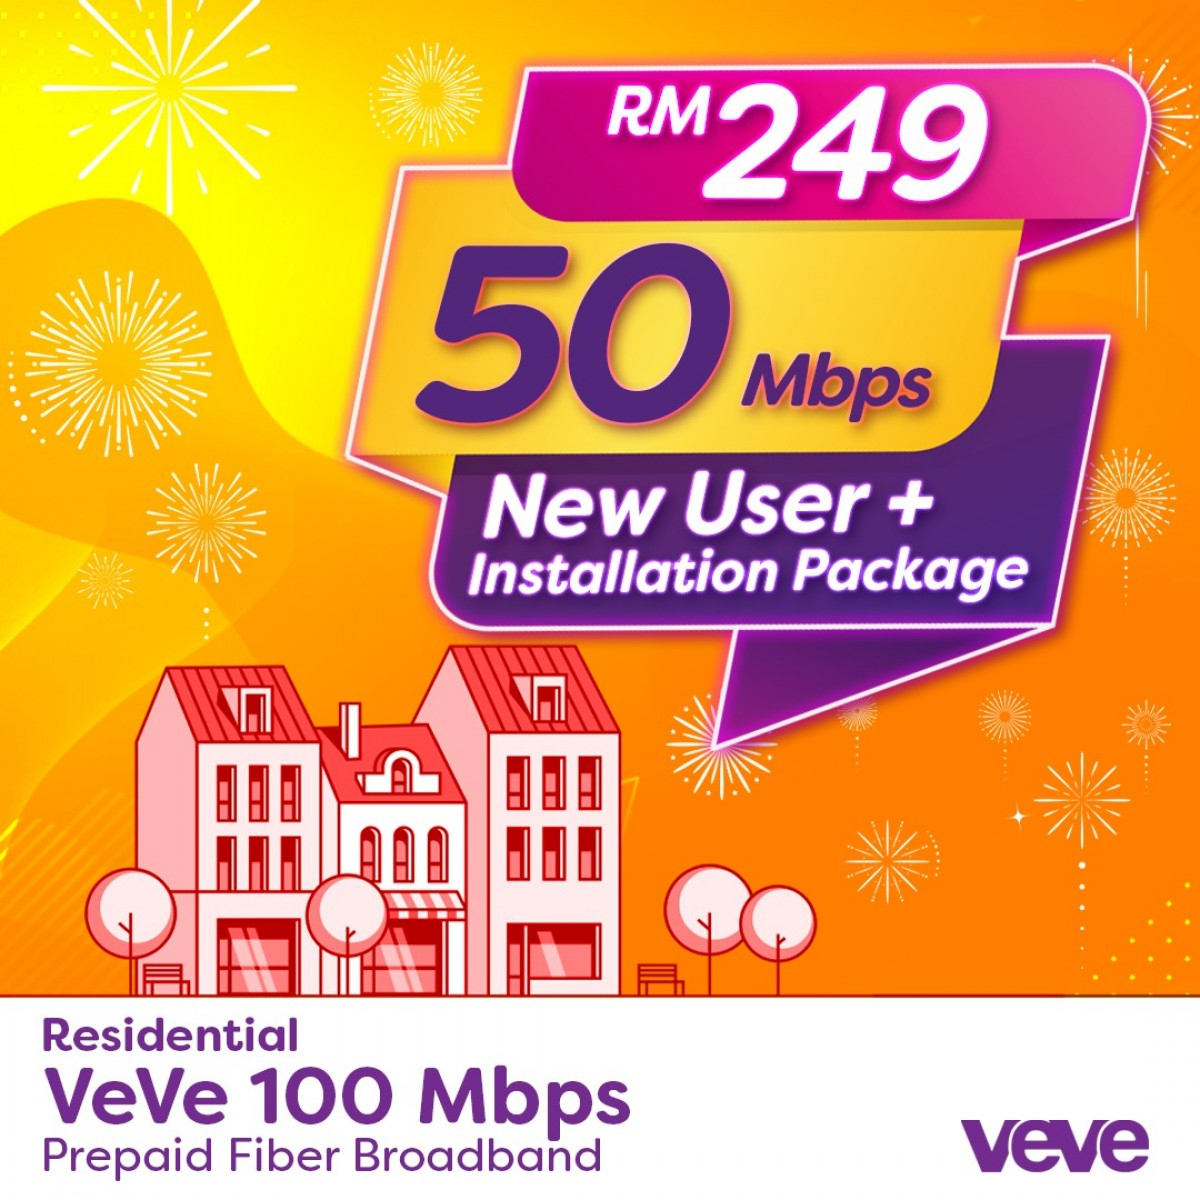 PROMO VEVE 50Mbps New User + Free Installation Package - VEVE